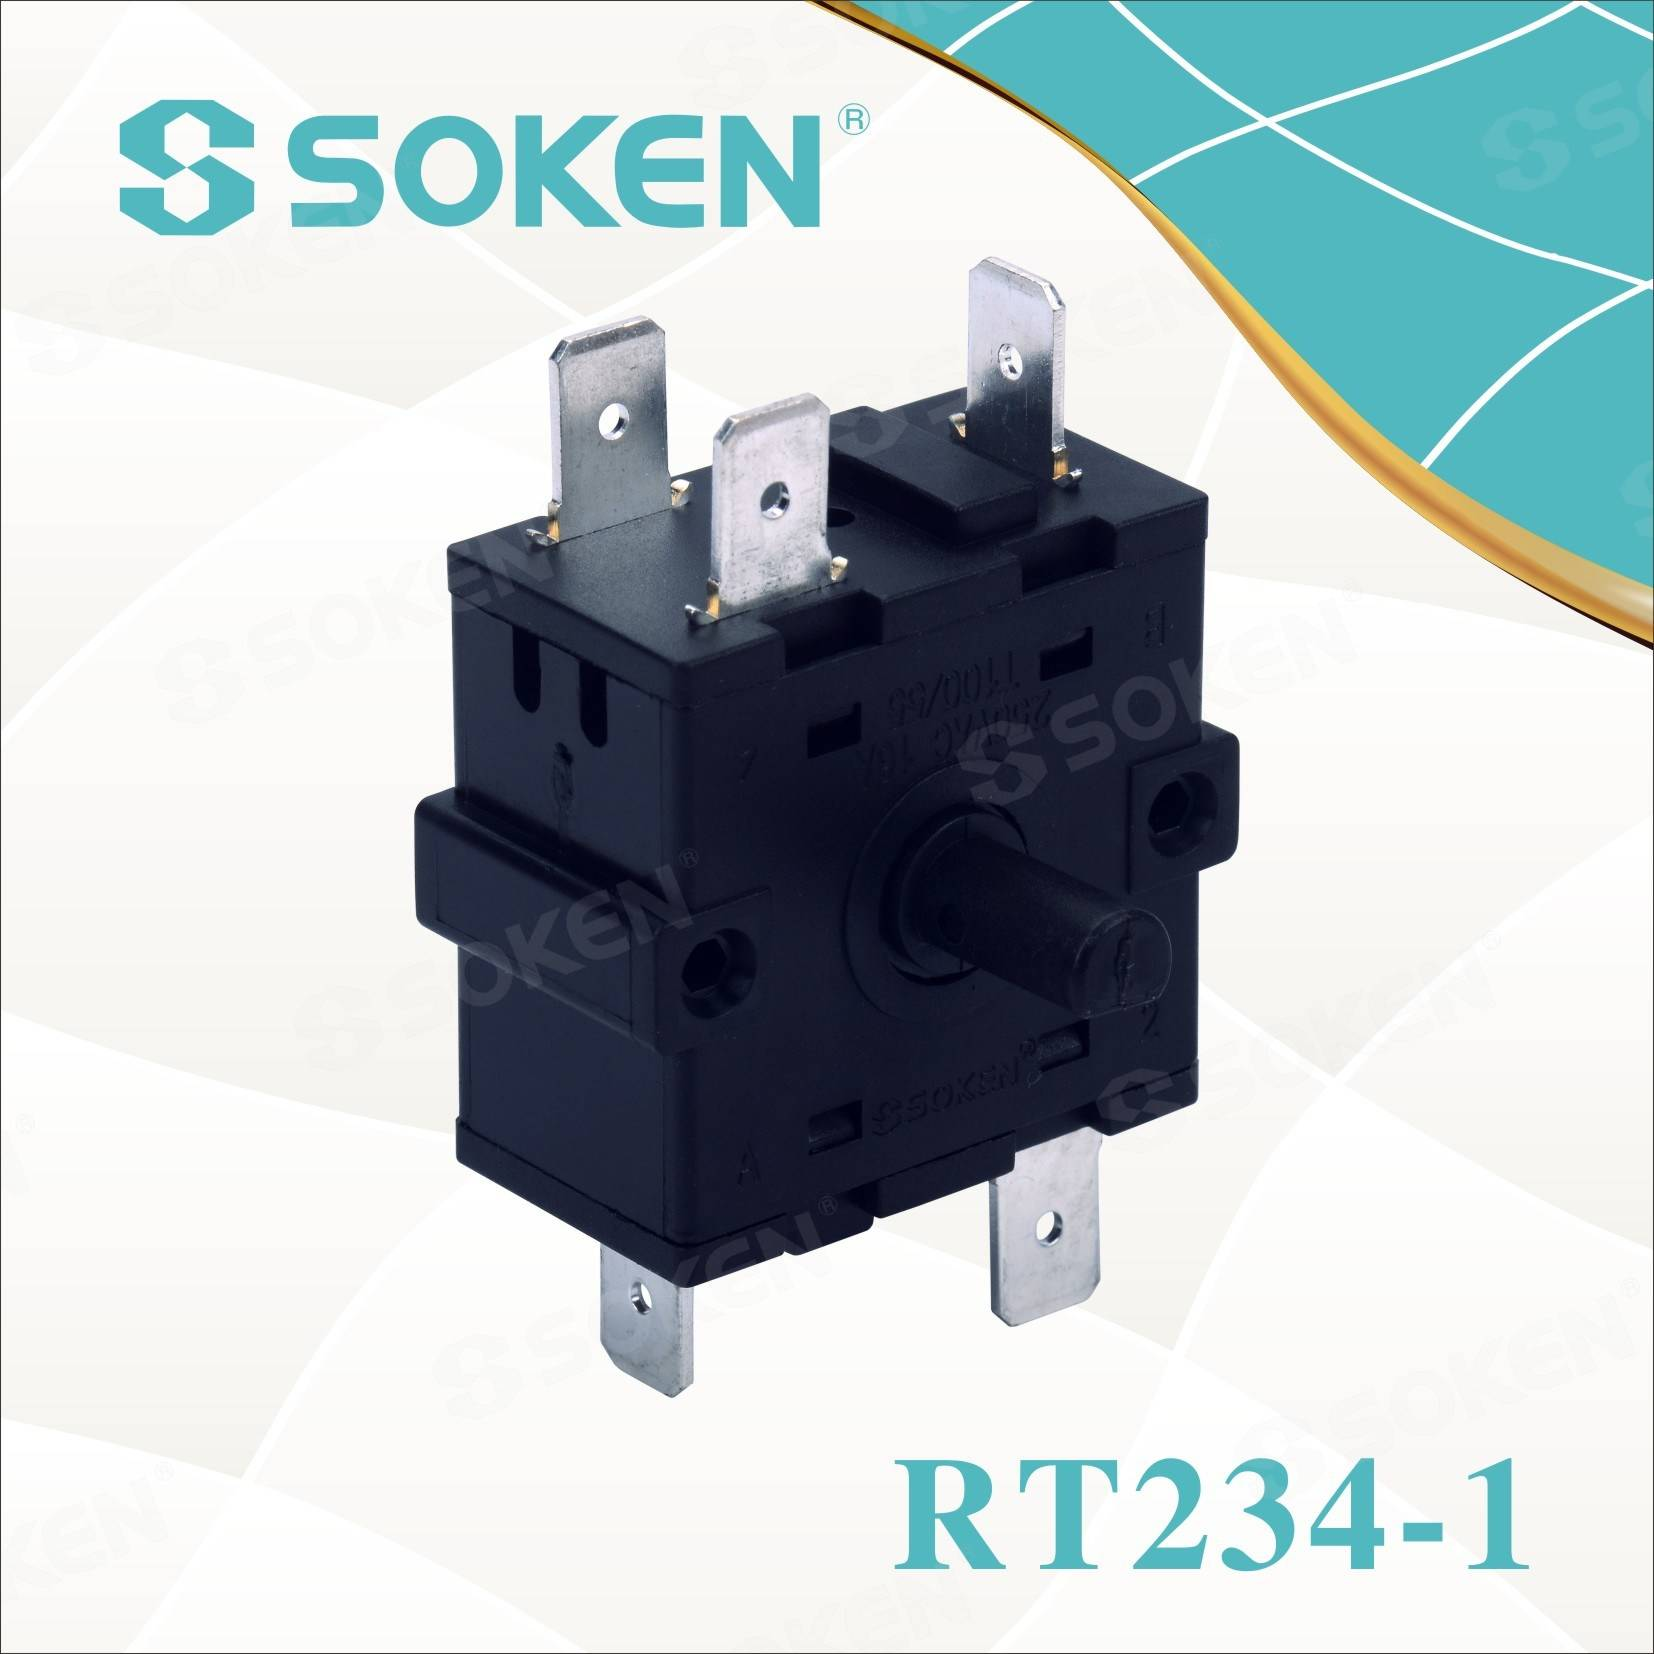 Soken elektrika Rotary Switch